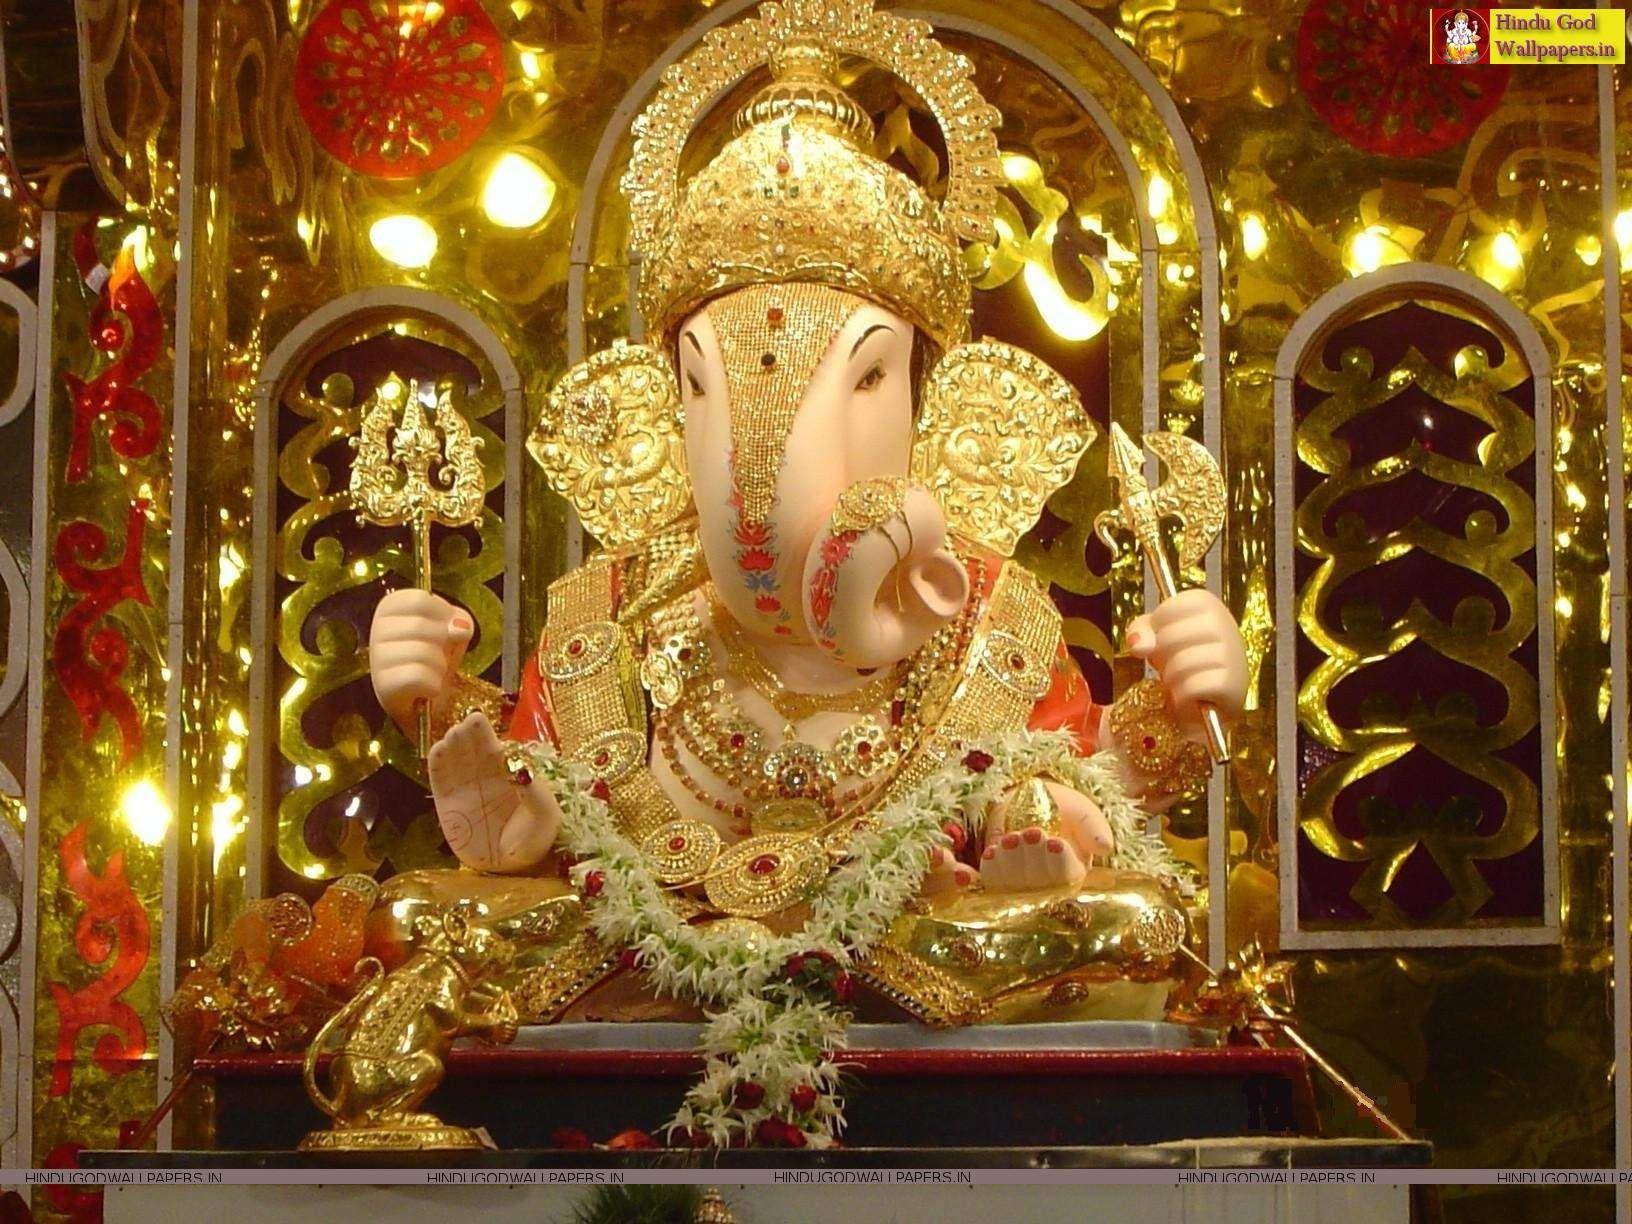 Wallpaper download ganesh - Best Latest Collection Of Ganesh God Images Ganesha Photo Gallery Free Download High Resolution